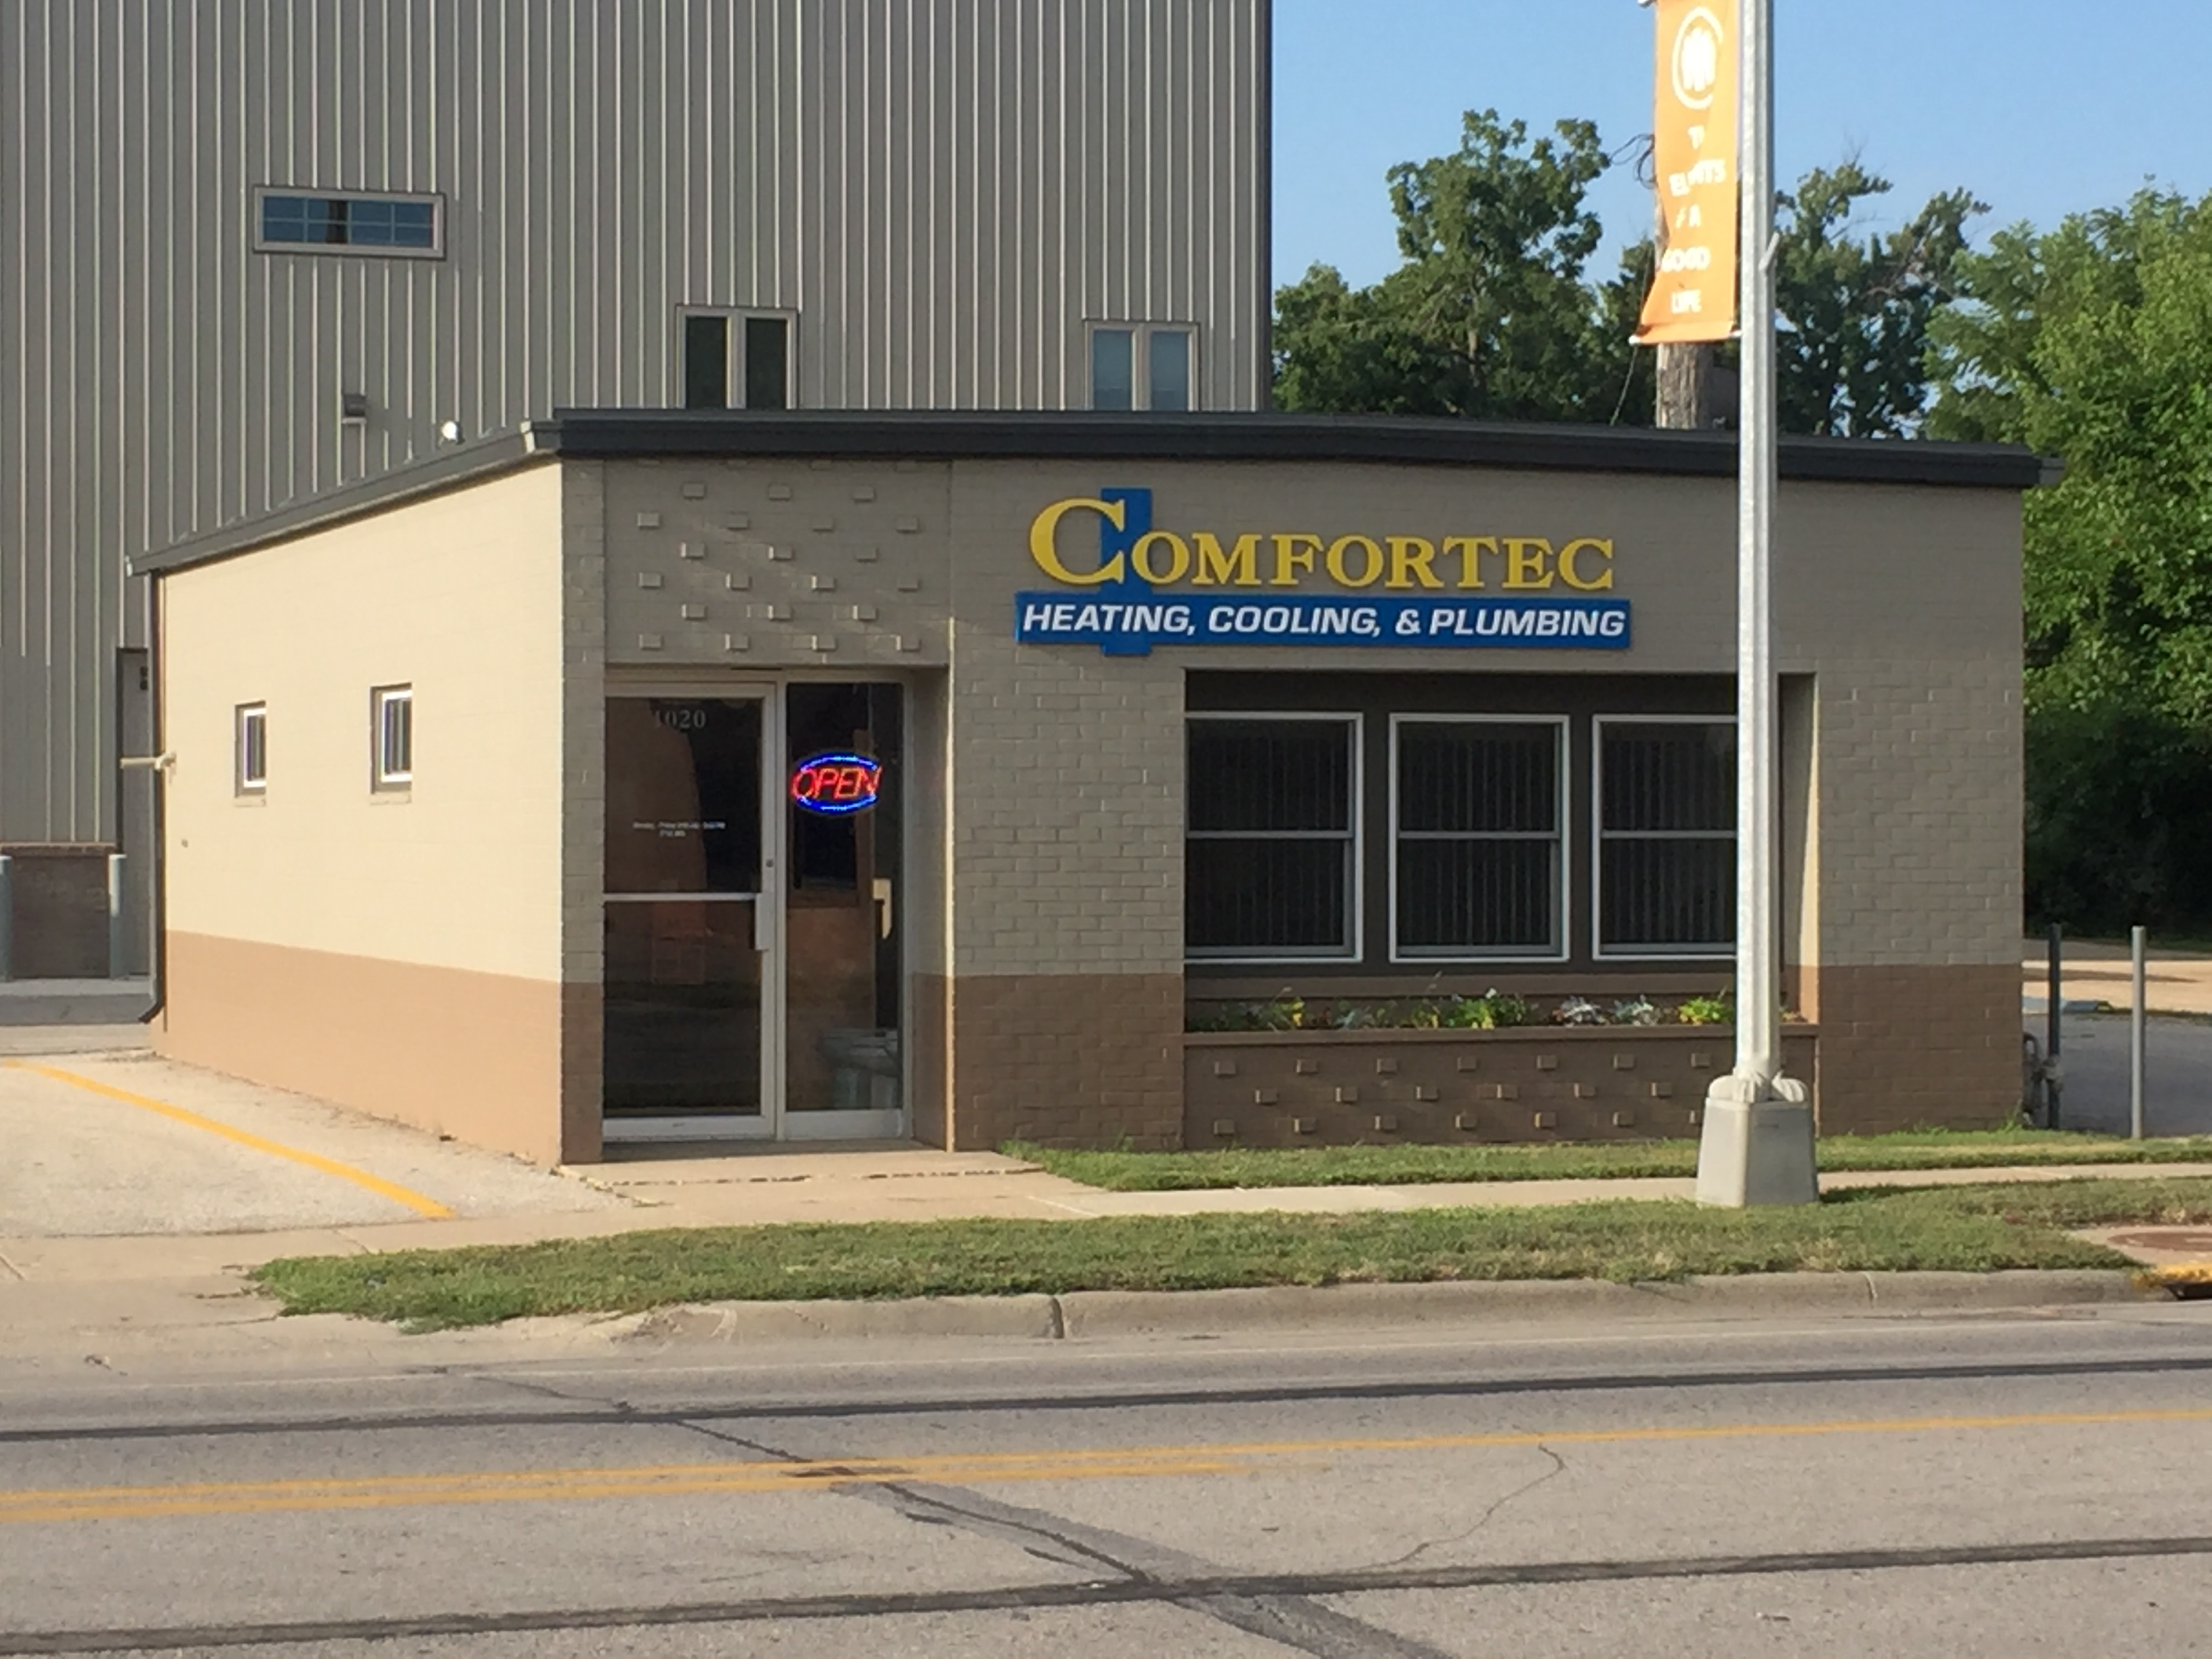 Comfortec Heating, Cooling & Plumbing, Inc. image 0